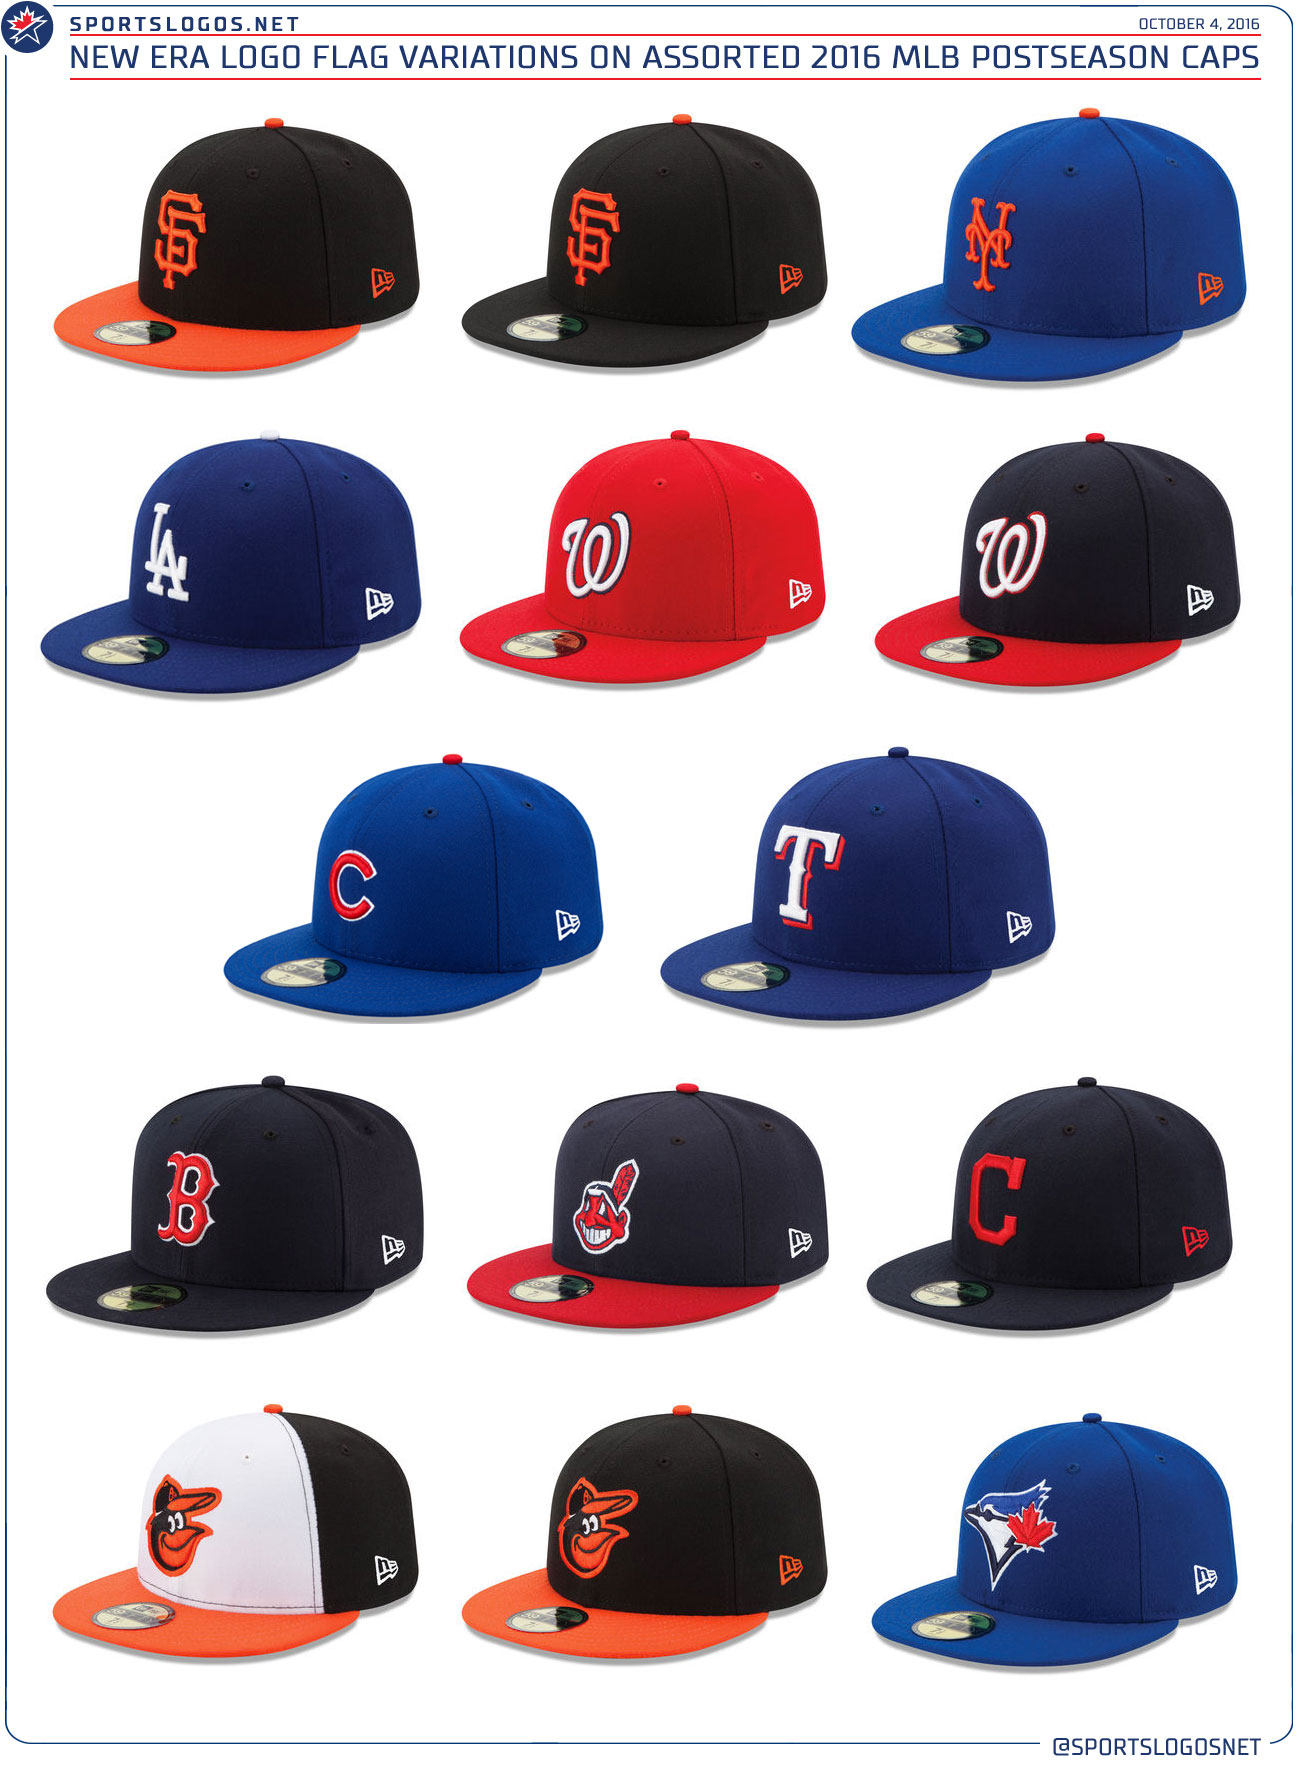 00a7e303a40d5 new era flag on mlb caps 2016. Postseason ...